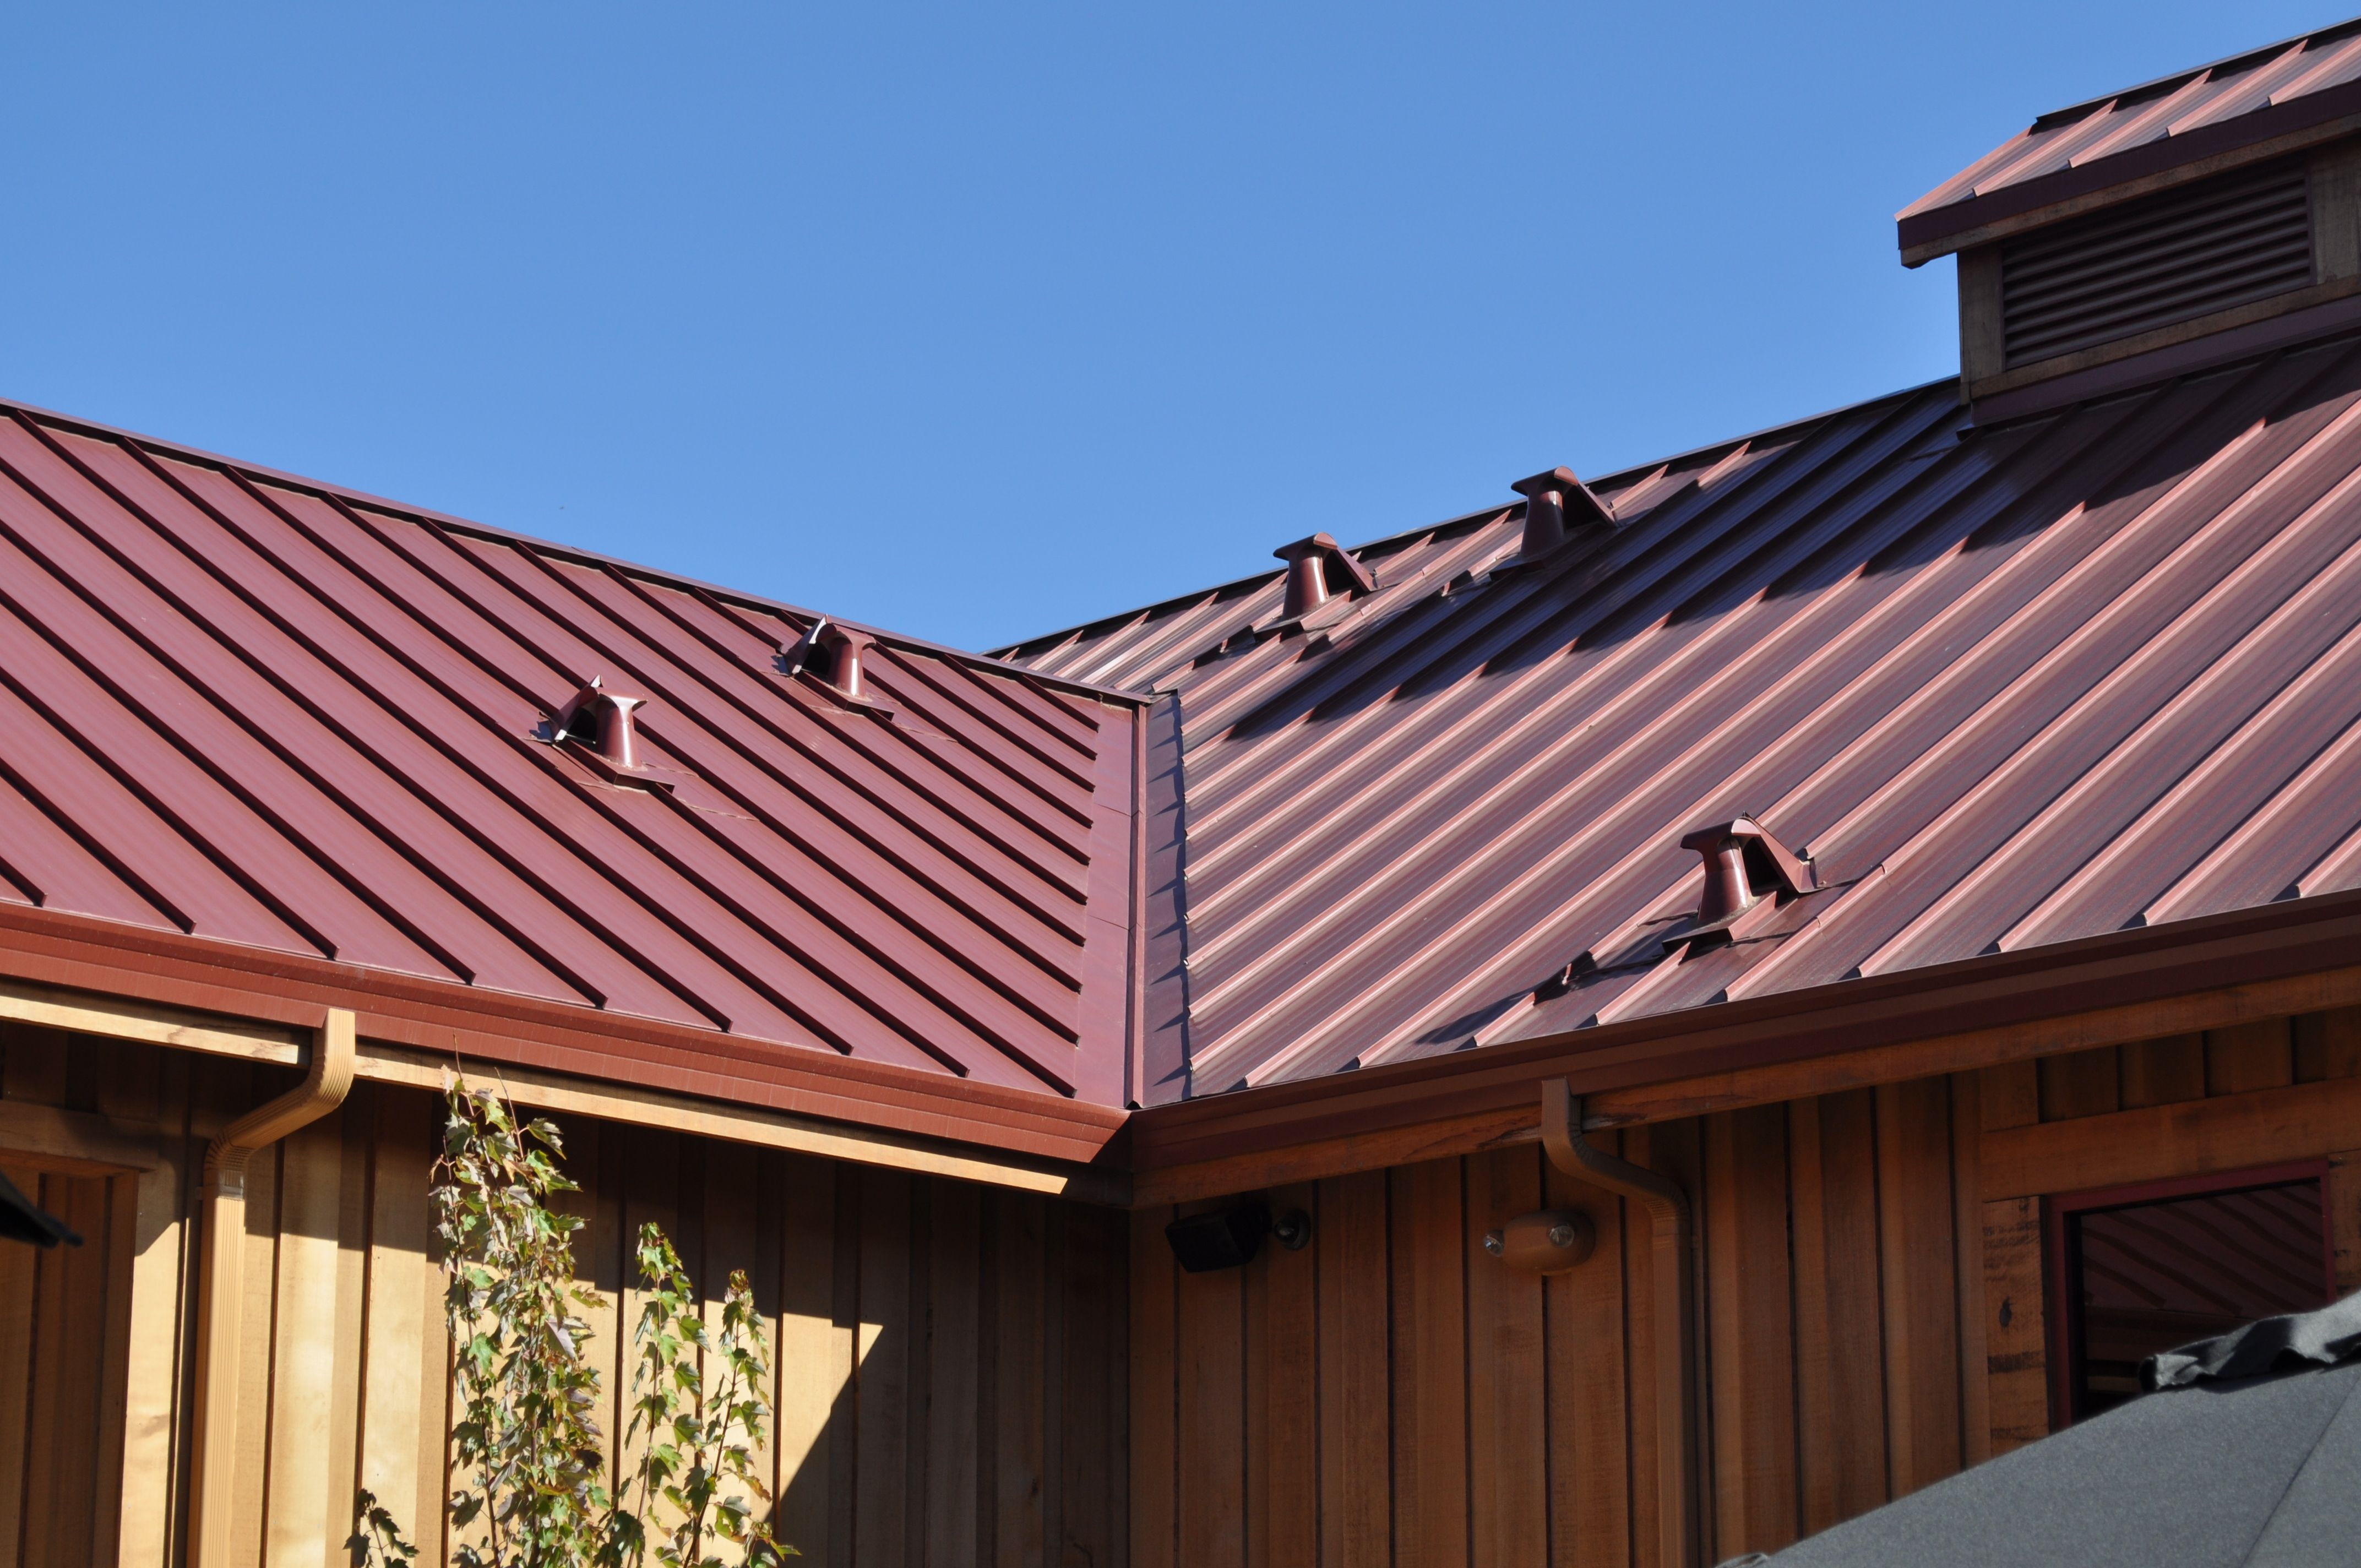 Beautiful Standing Seam Metal Roof In Lodi California Made Possible With The Snaptablehd From Swenson Shear Metal Roof Standing Seam Roofing